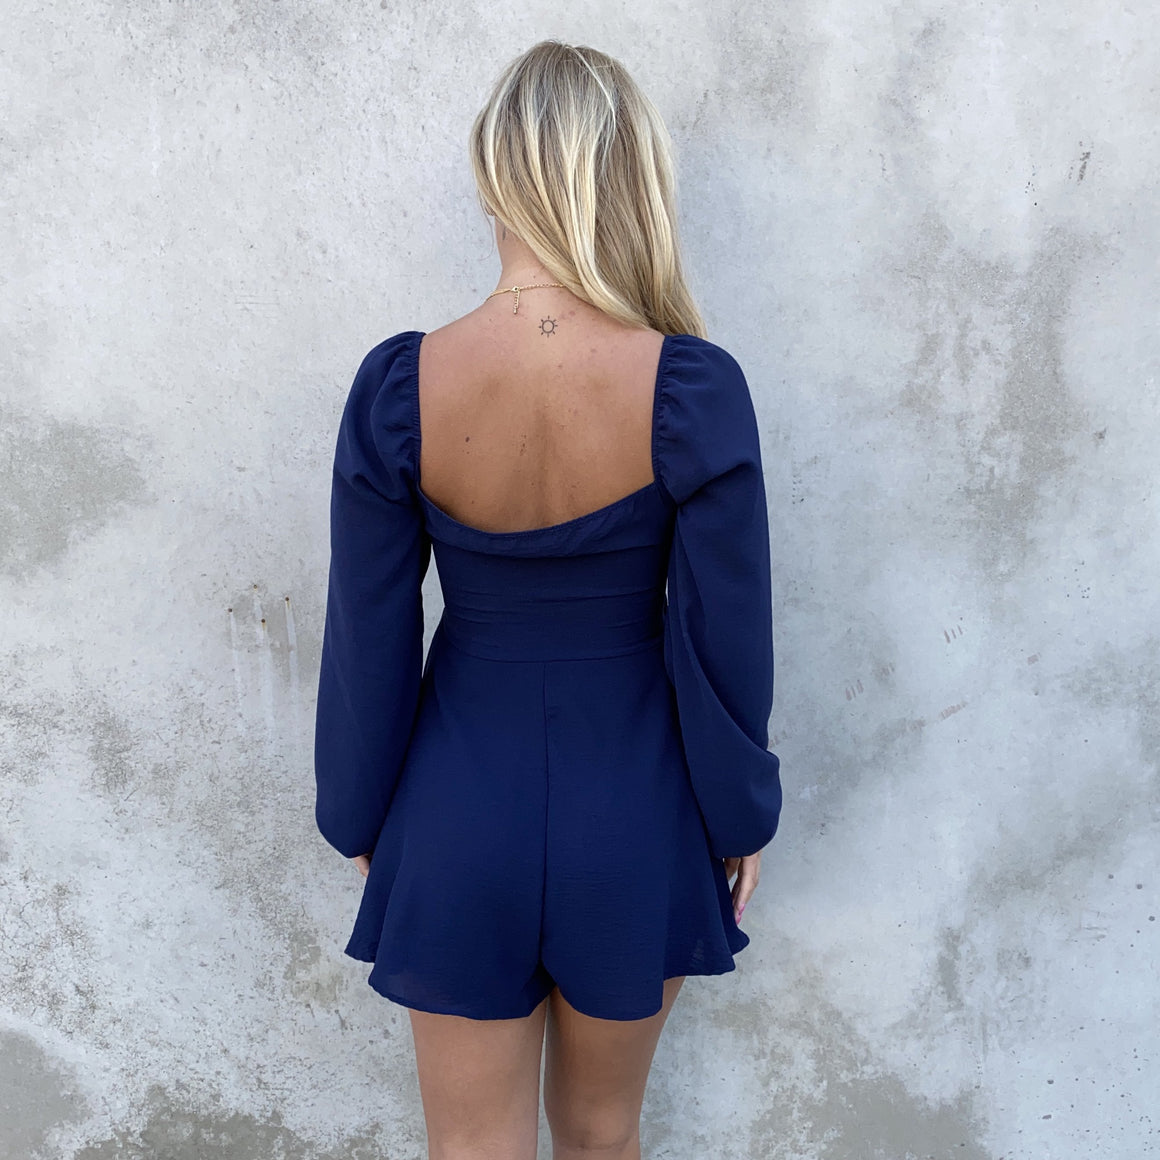 Knot This Time Navy Romper - Dainty Hooligan